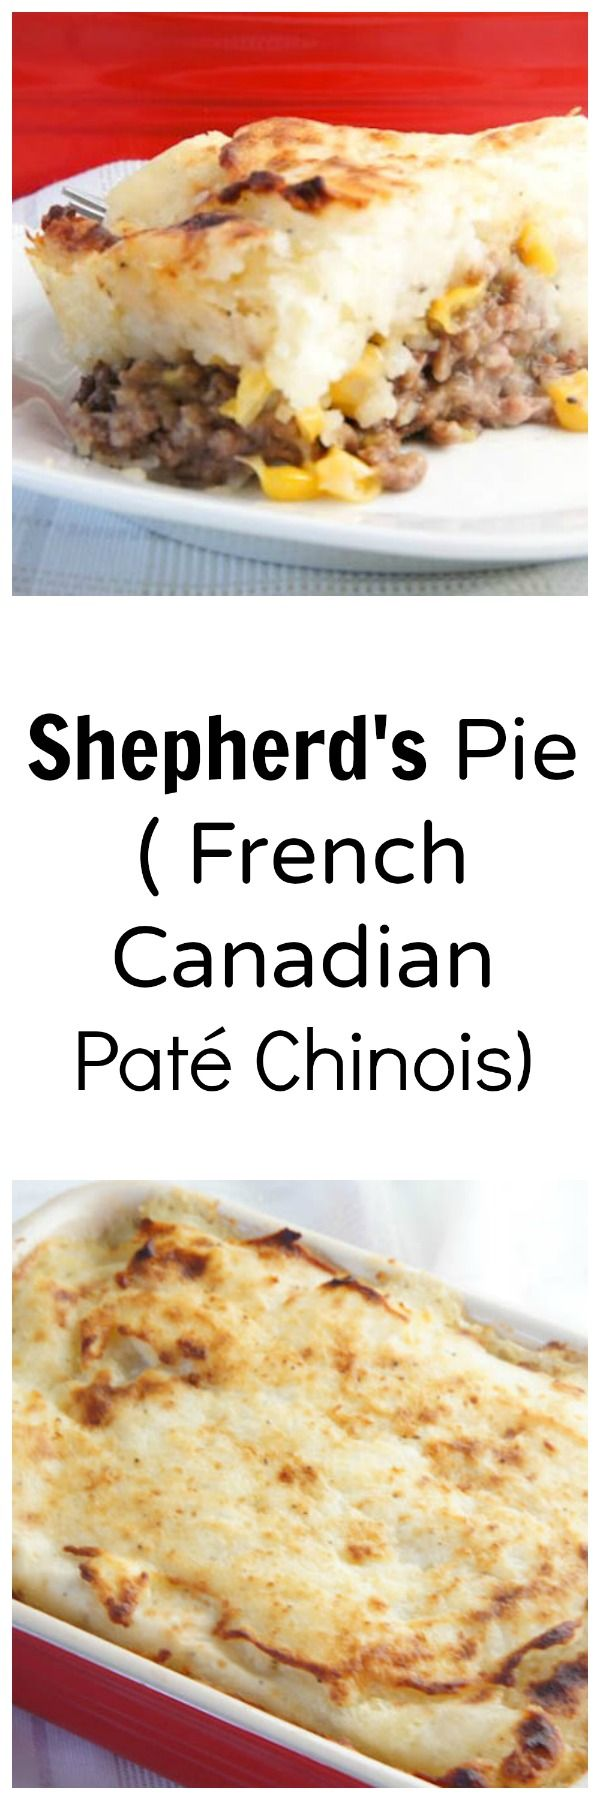 For Canada - Paté Chinois, a traditional French Canadian Shepherd's Pie